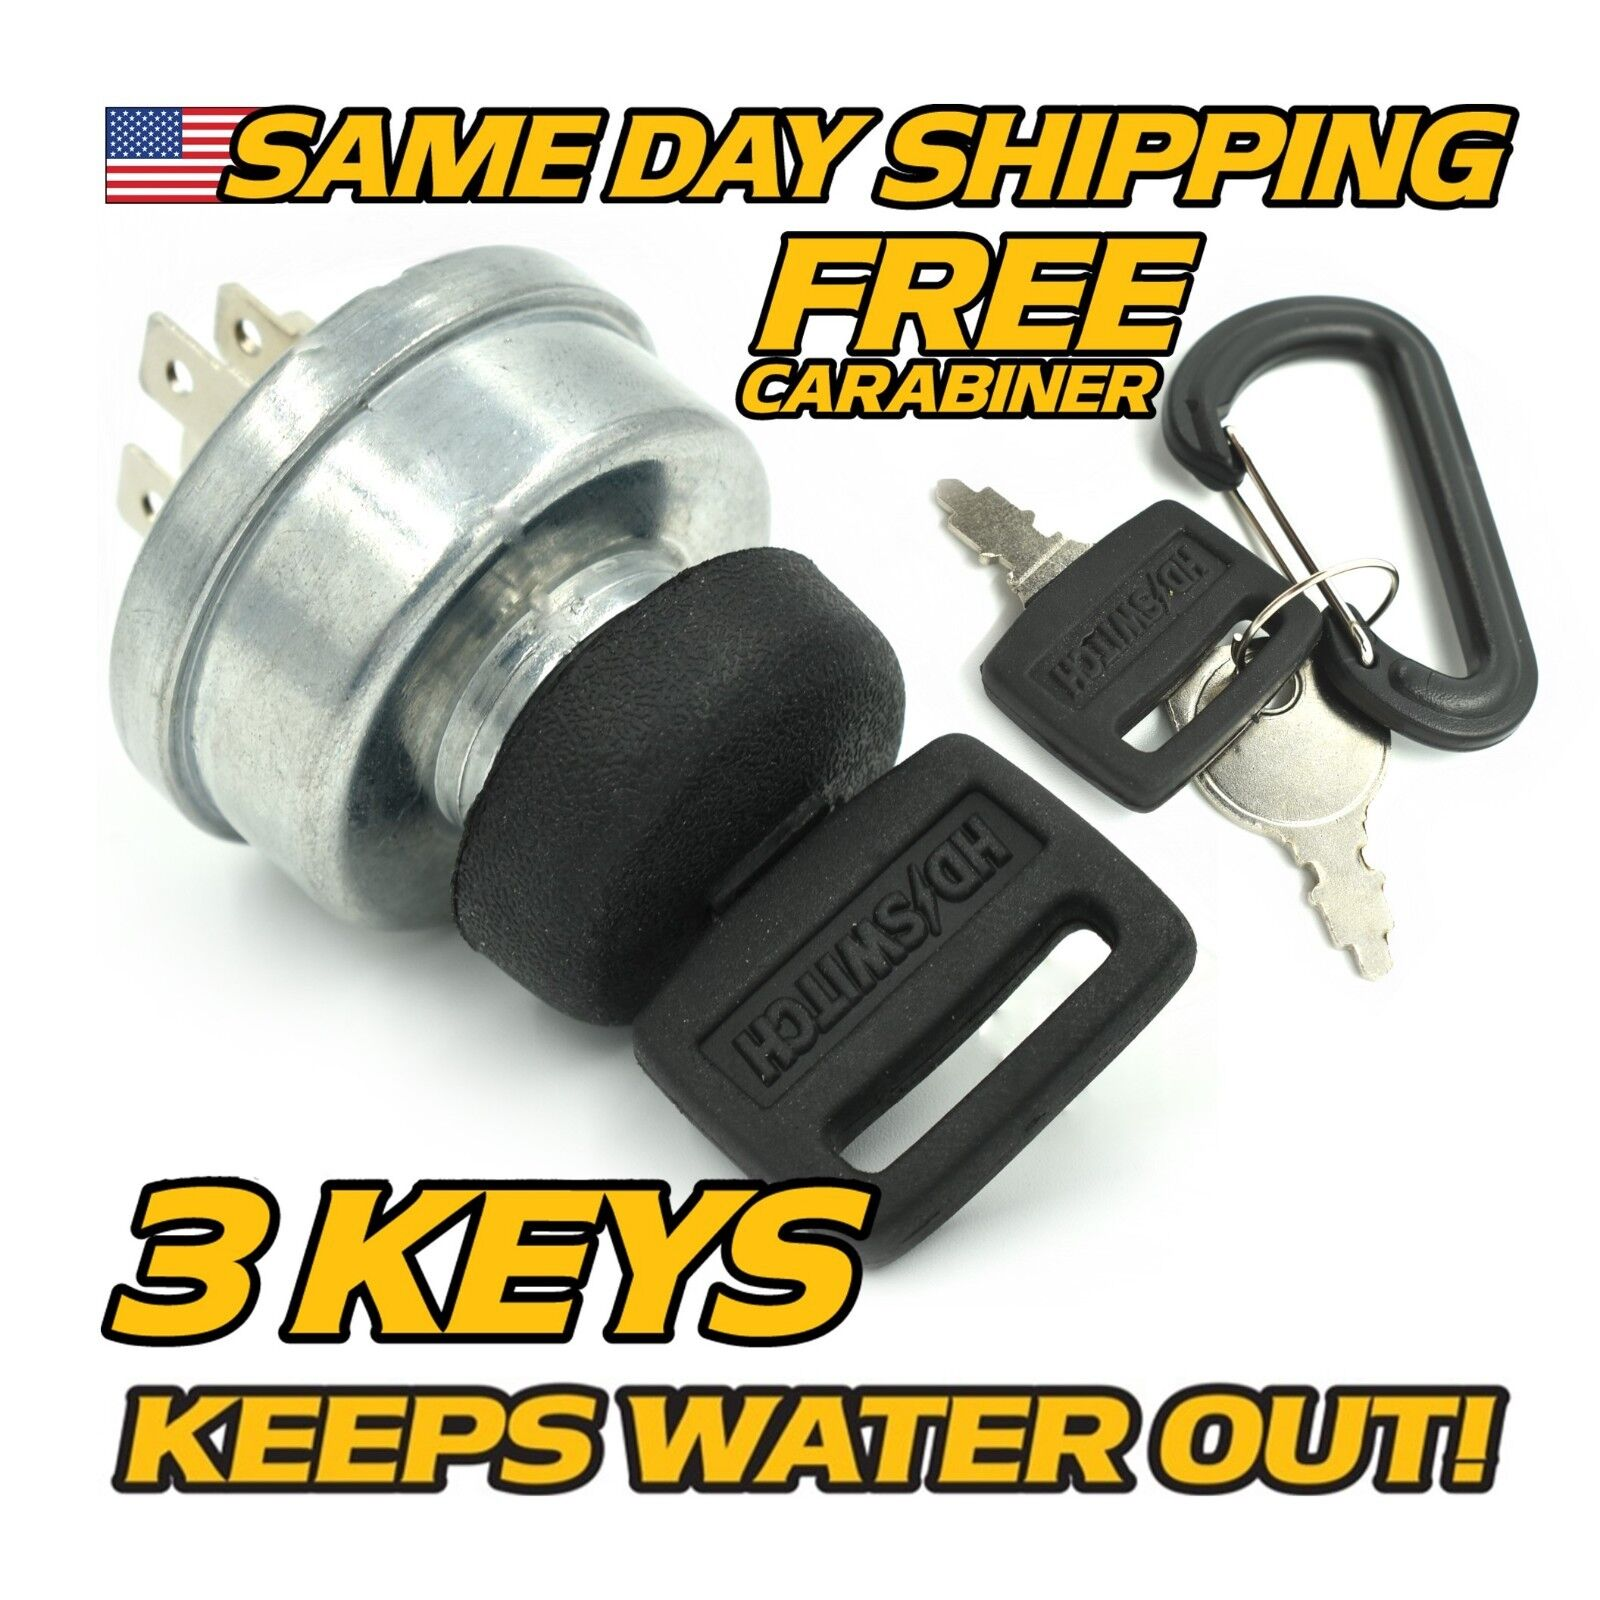 Scag 48017 Ignition Key Switch w/Protective Cover UPGRADE 3